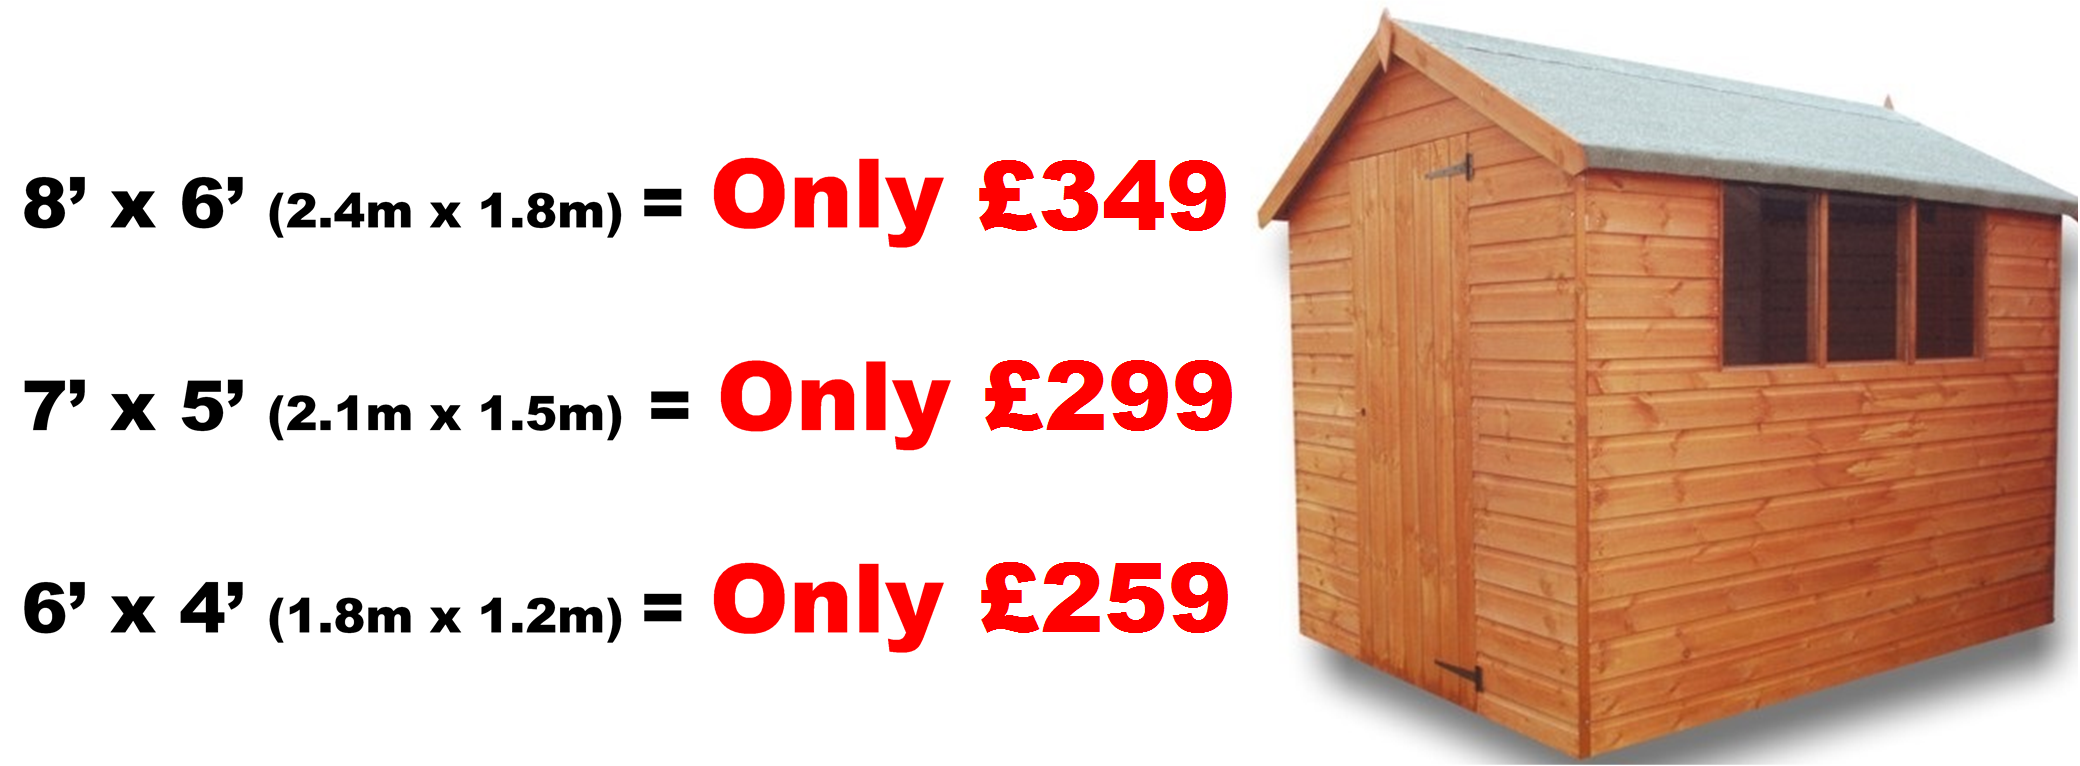 Garden Sheds 5m X 3m large range of gardenwise sheds. ideas for garden sheds practical